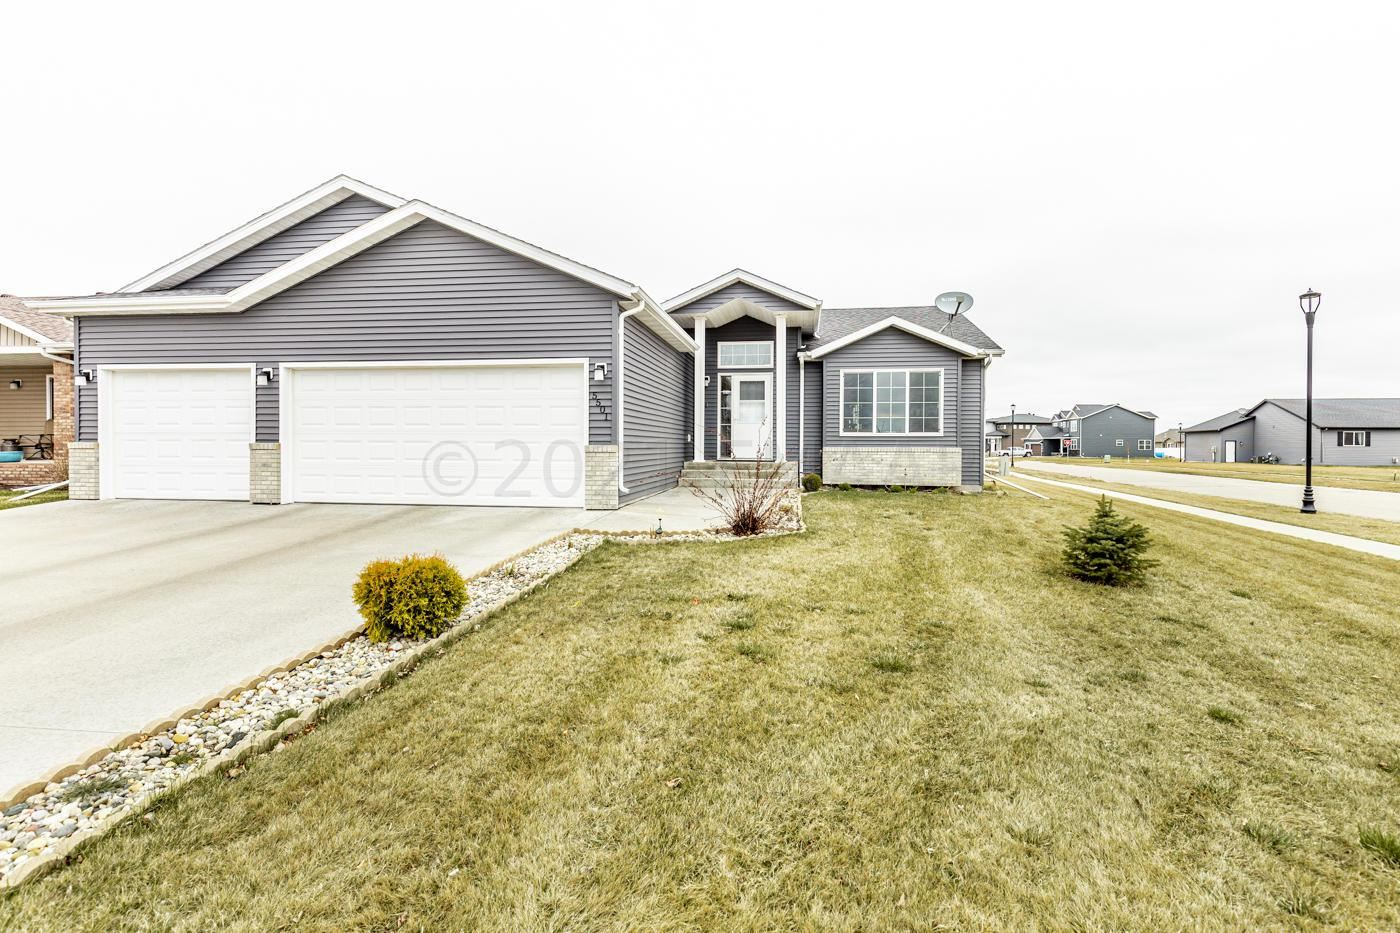 5501 JUSTICE Drive S, Fargo, ND 58104 - #: 21-1963